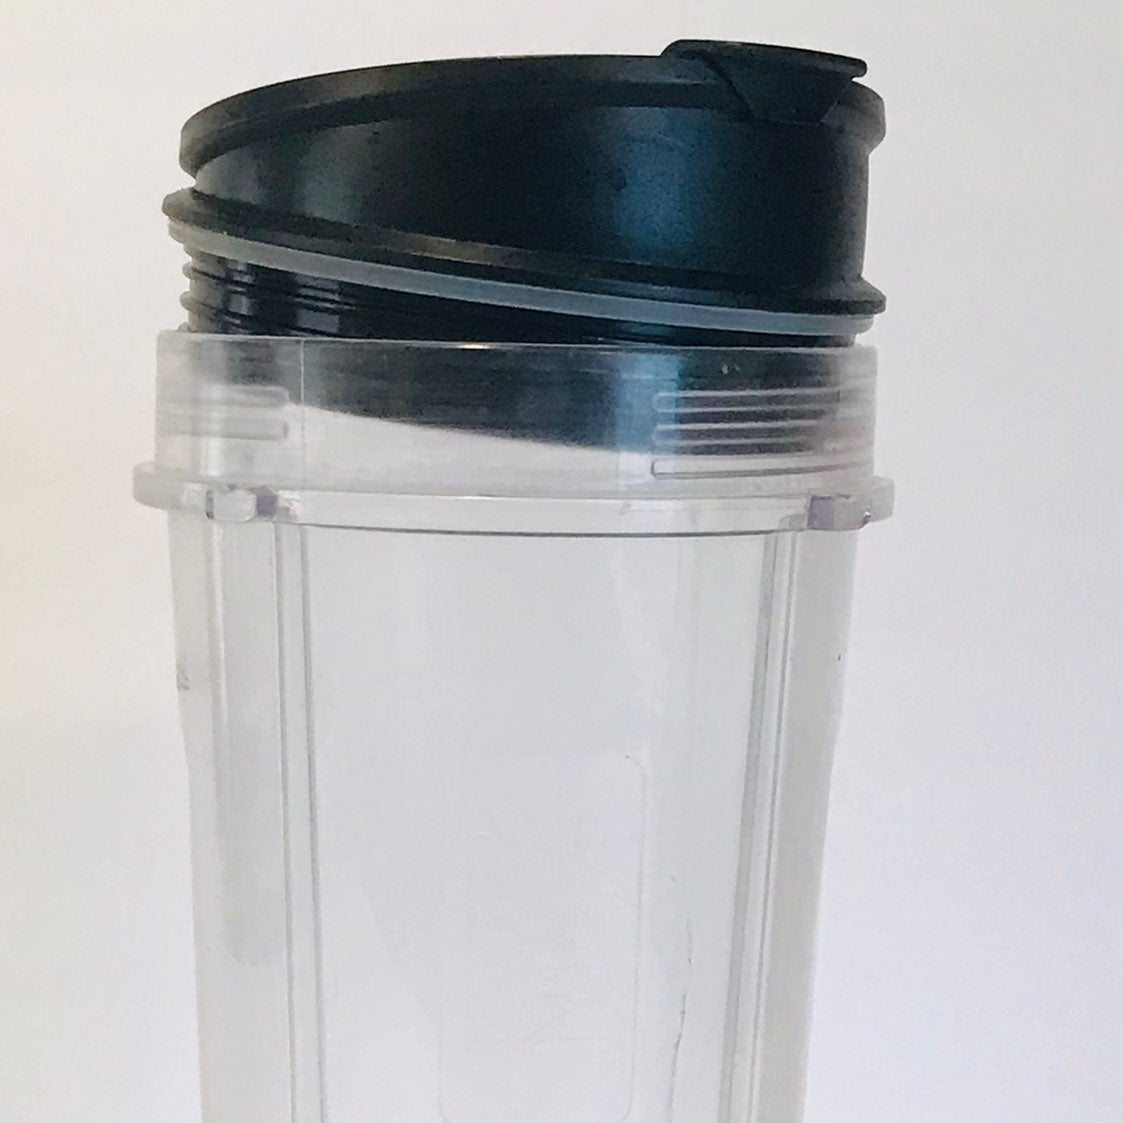 Ninja 24 Ounce Replacement Smoothie Cup